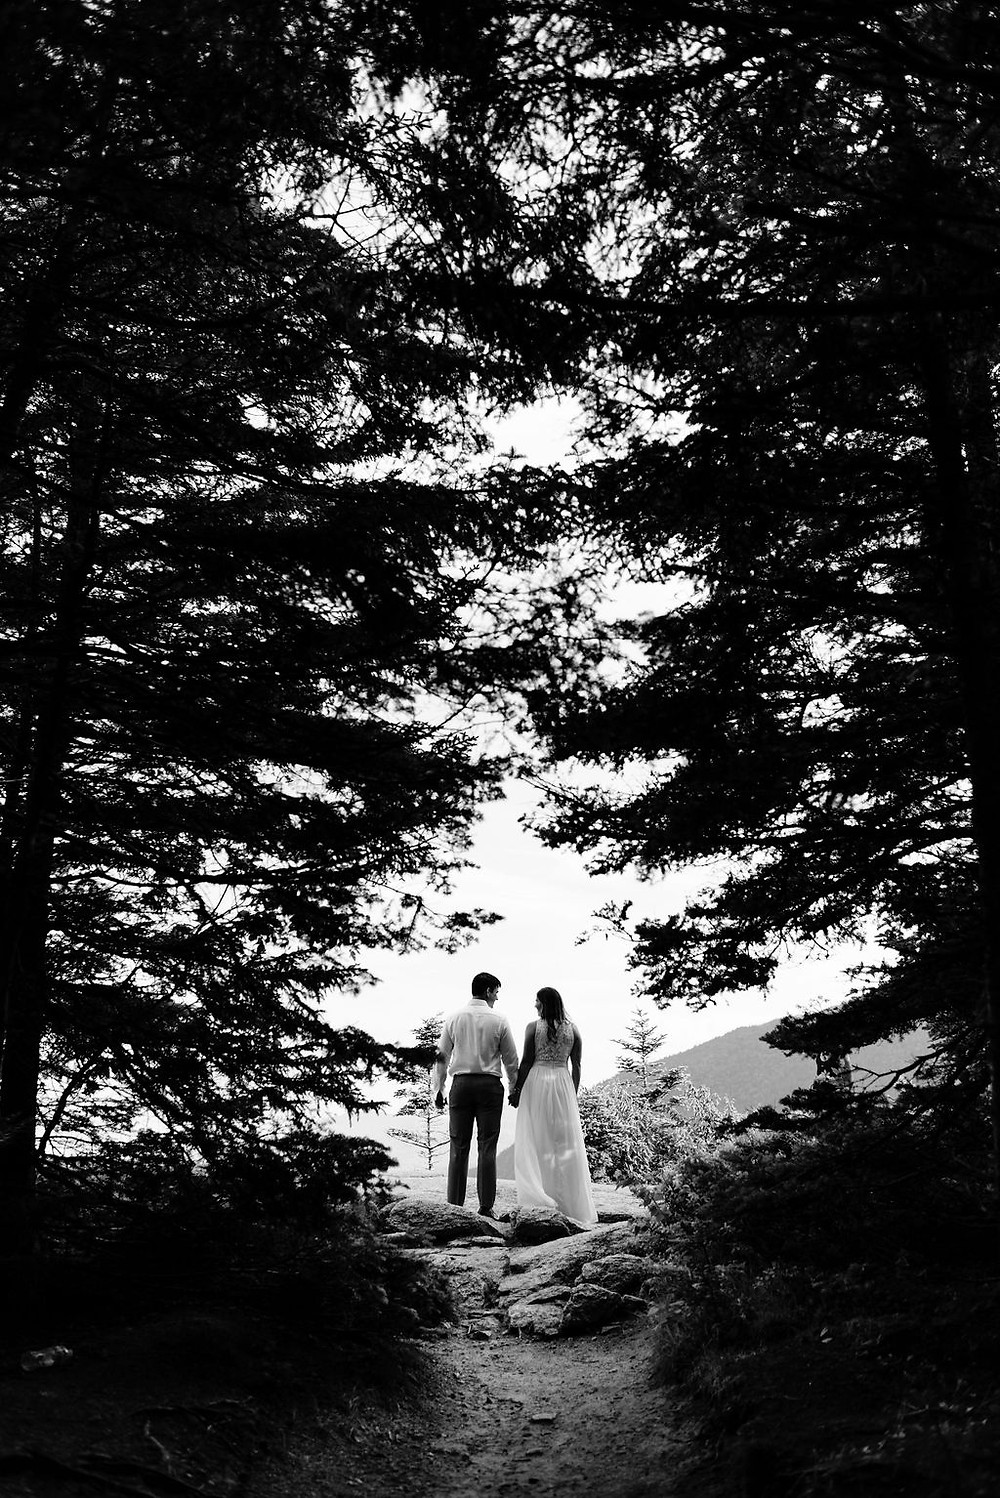 photo through the trees of the couple holding hands side by side facing away from the camera